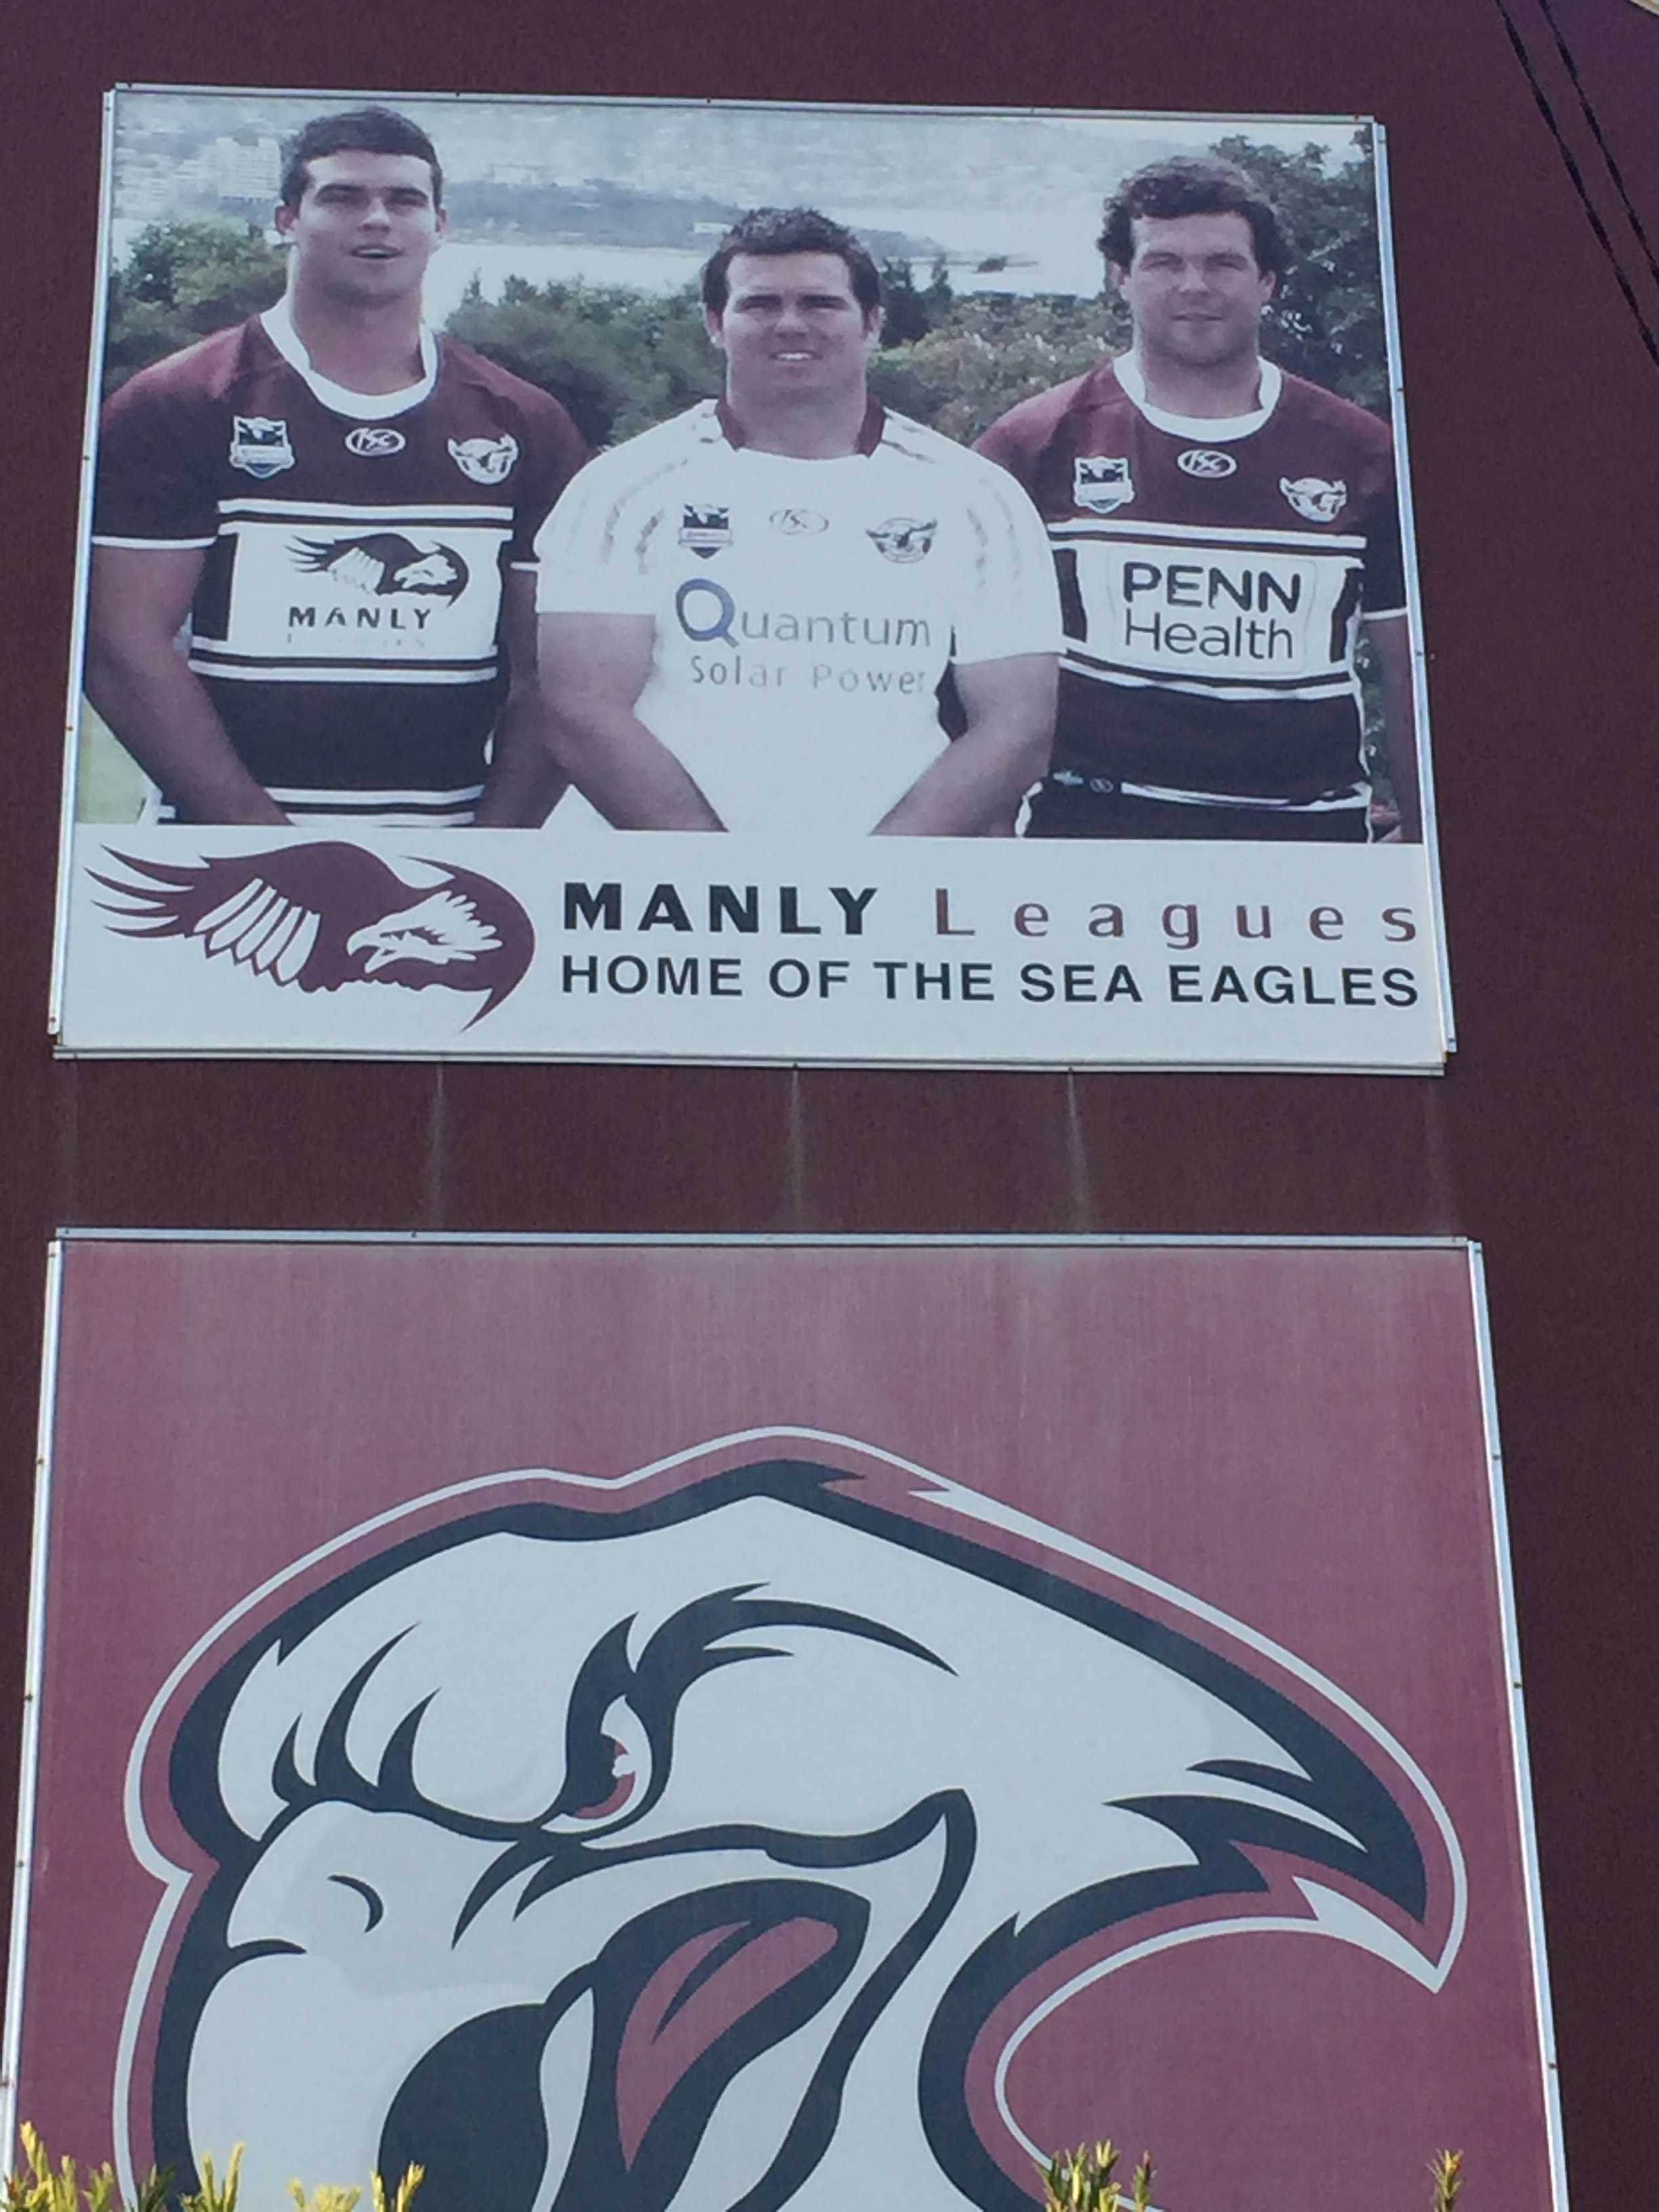 Manly Leagues Club